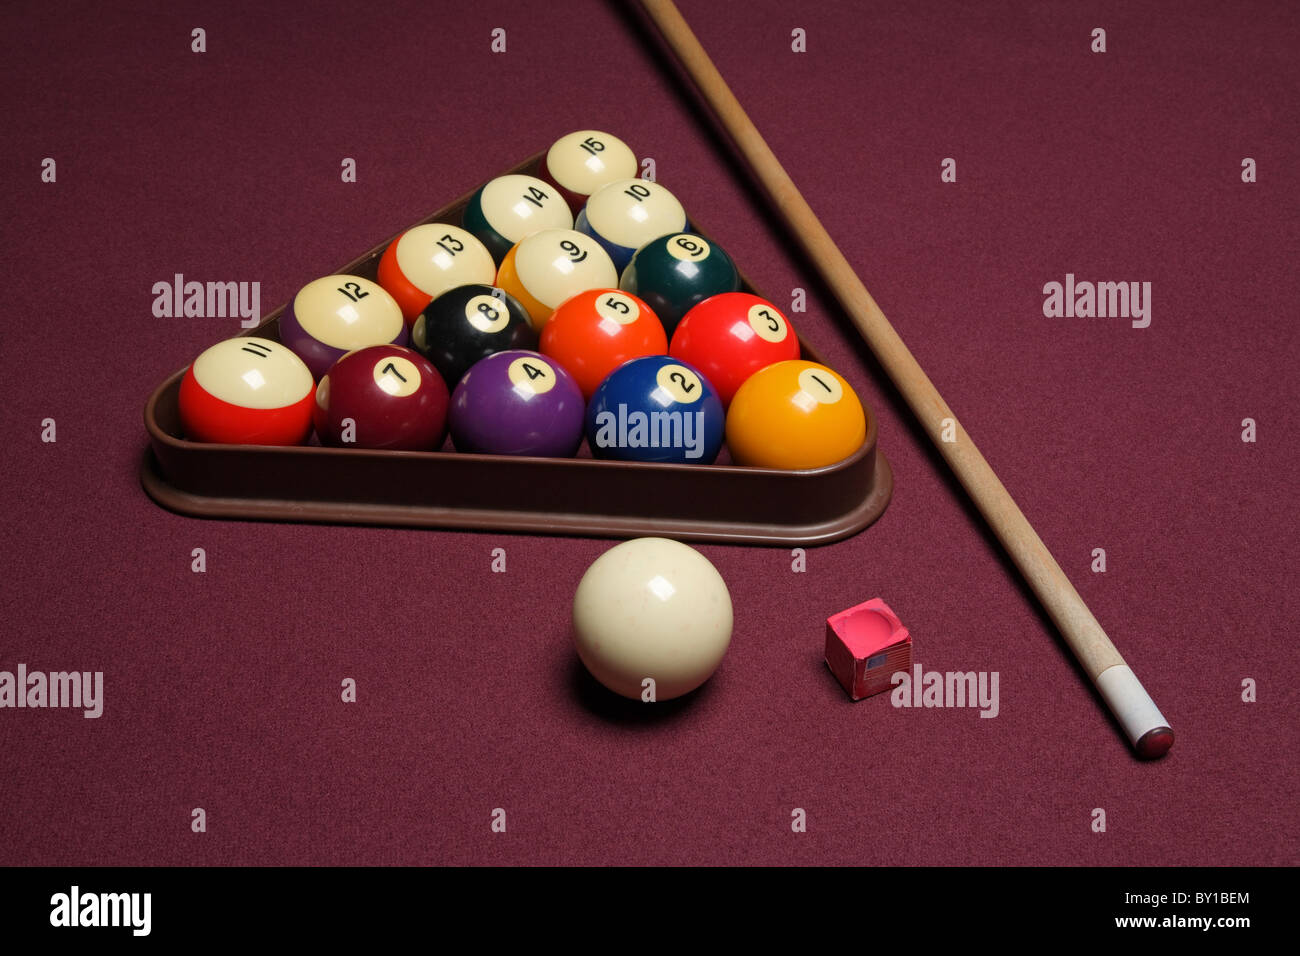 billiard pool table with cue stick triangle and balls - Stock Image